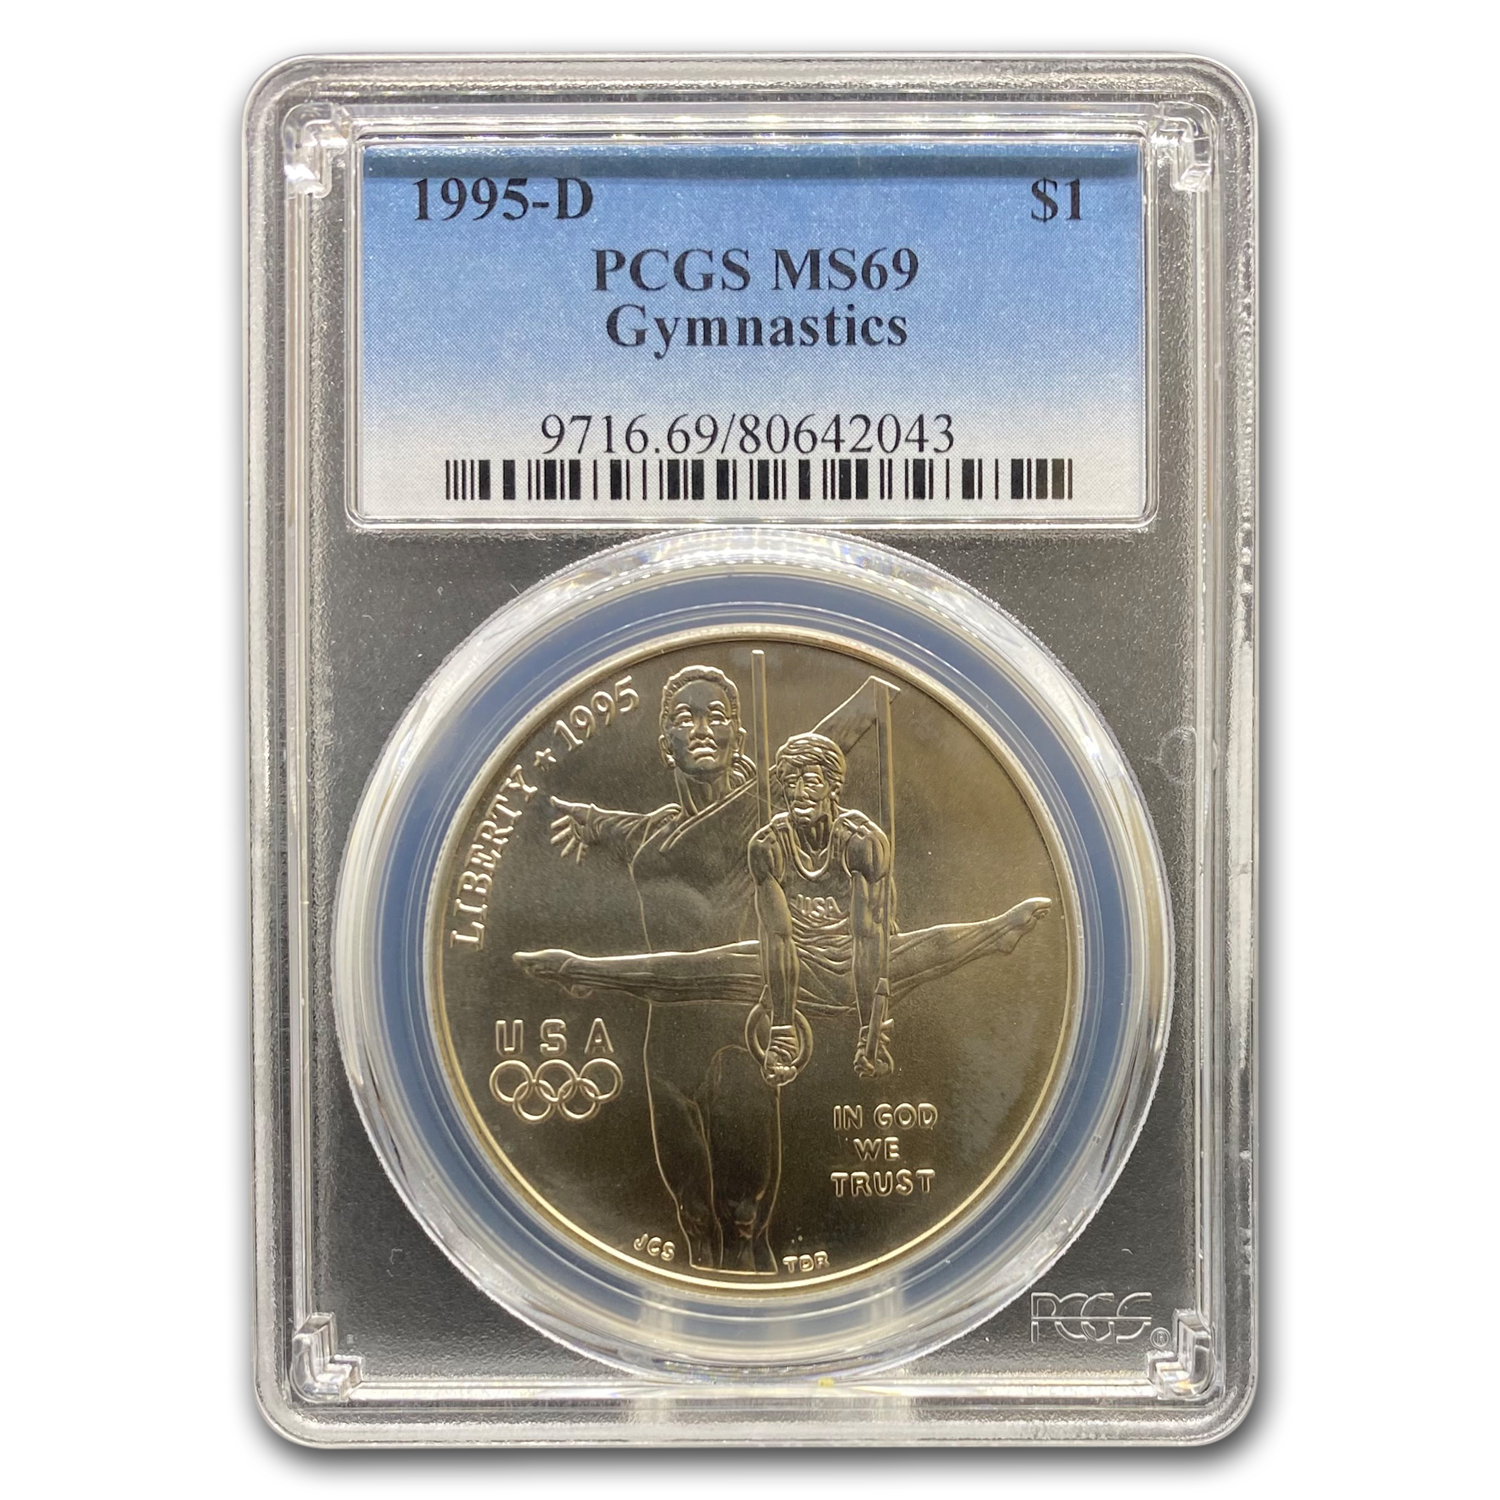 1995-D Olympic Gymnast $1 Silver Commemorative MS-69 PCGS